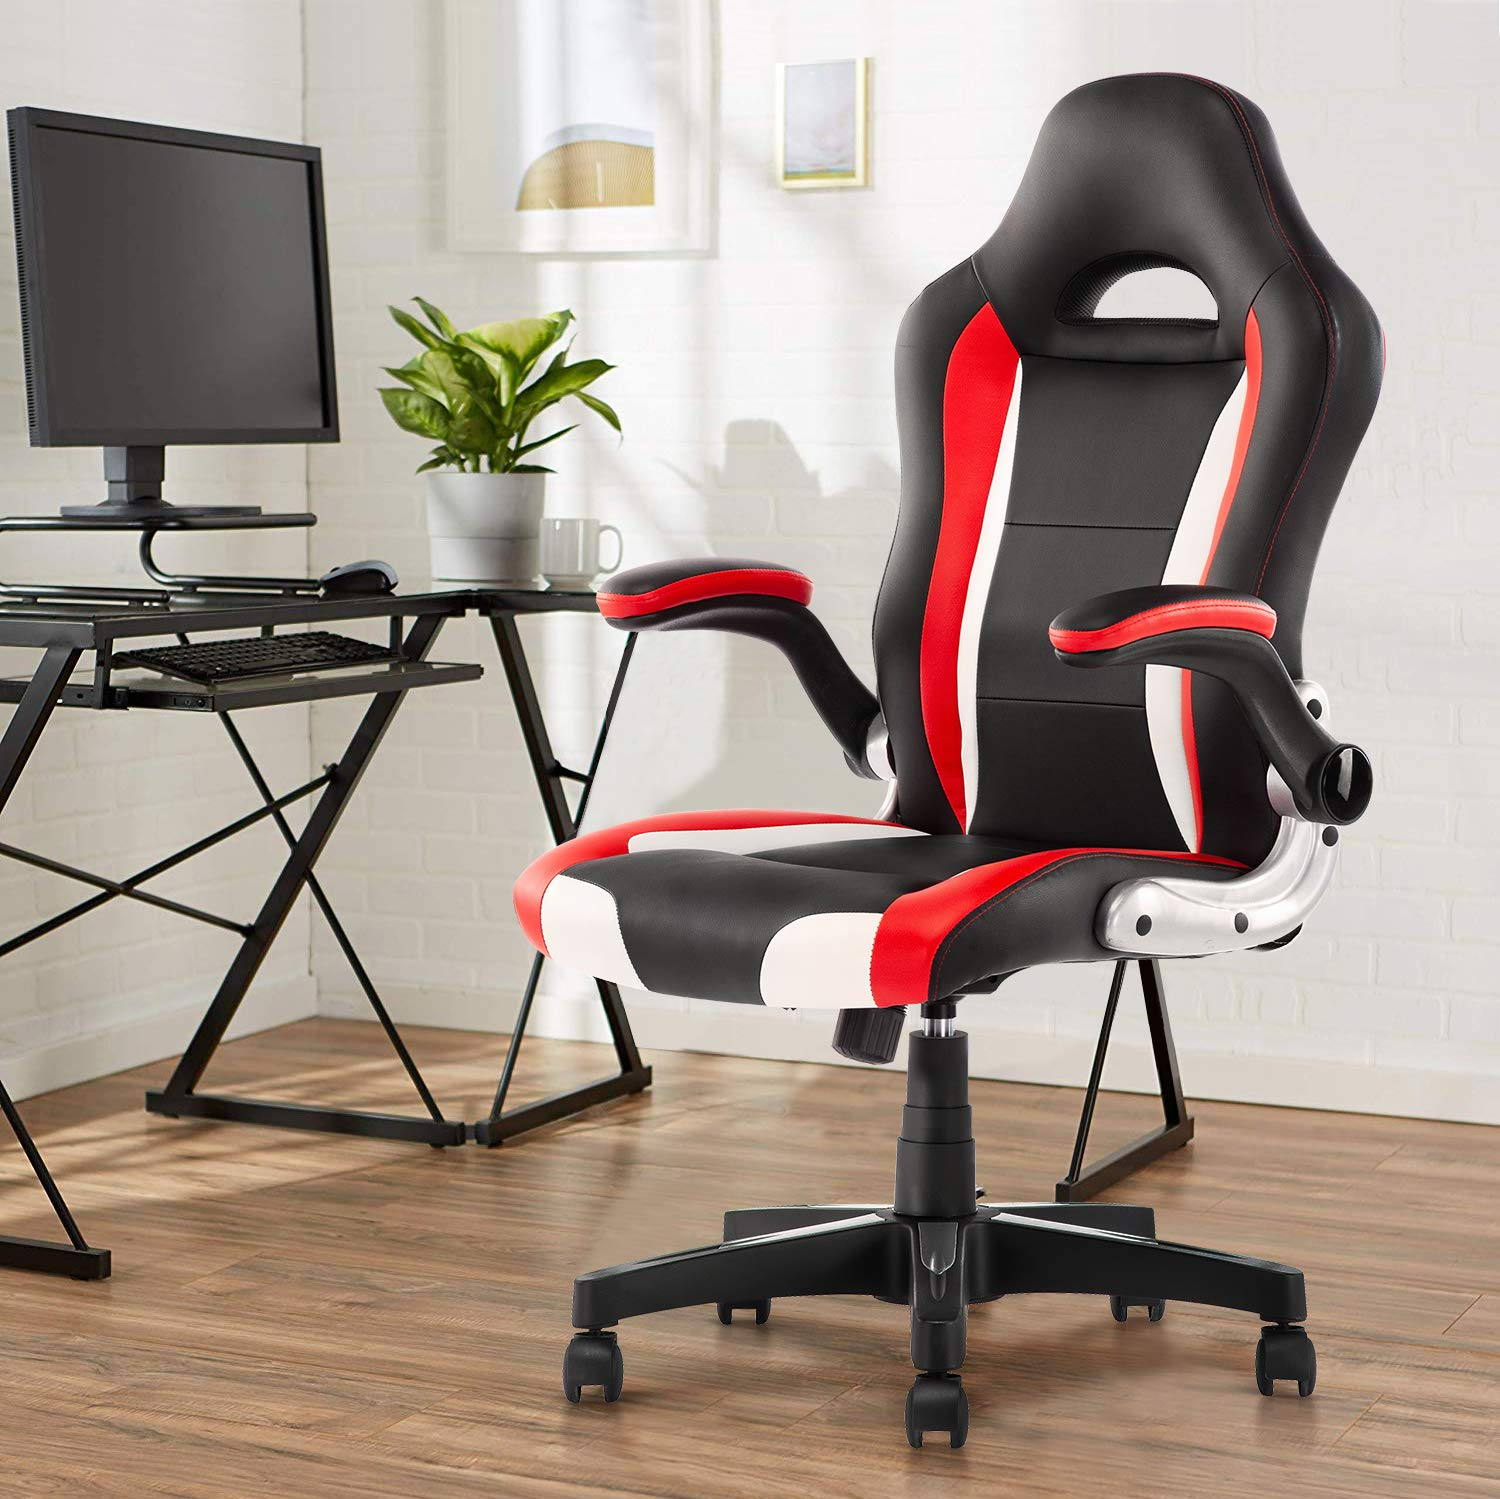 YAMASORO Leather Office Chair - Adjustable Tilt Angle and Seat Height High Back Executive Computer Desk Chair for Comfort Ergonomic Design for Lumbar Support by YAMASORO